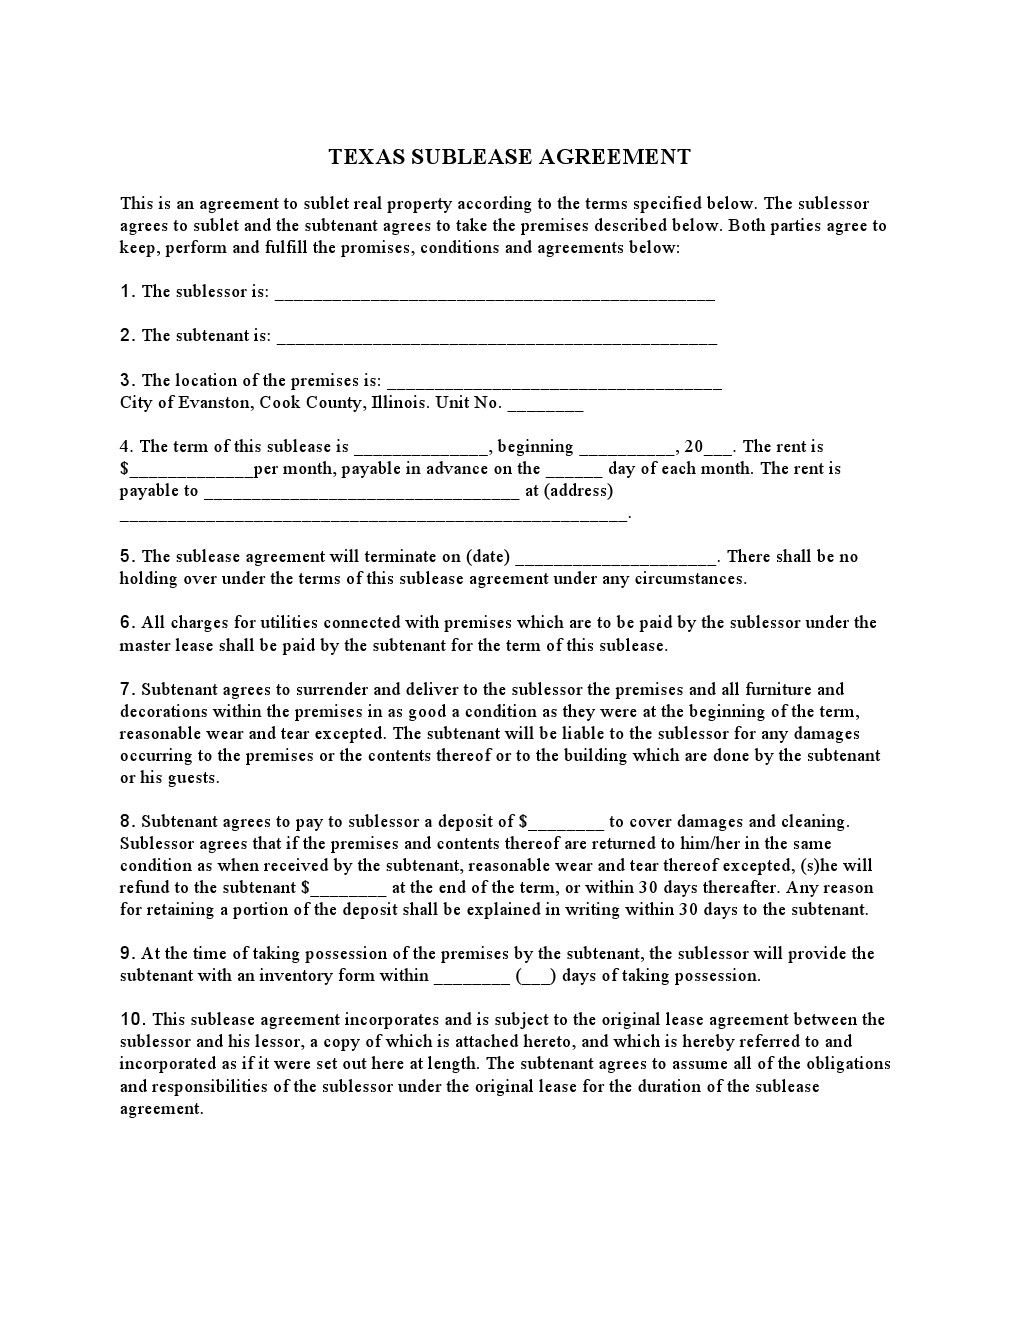 Sublease Agreement Template Free Letter Sponsorship For Event